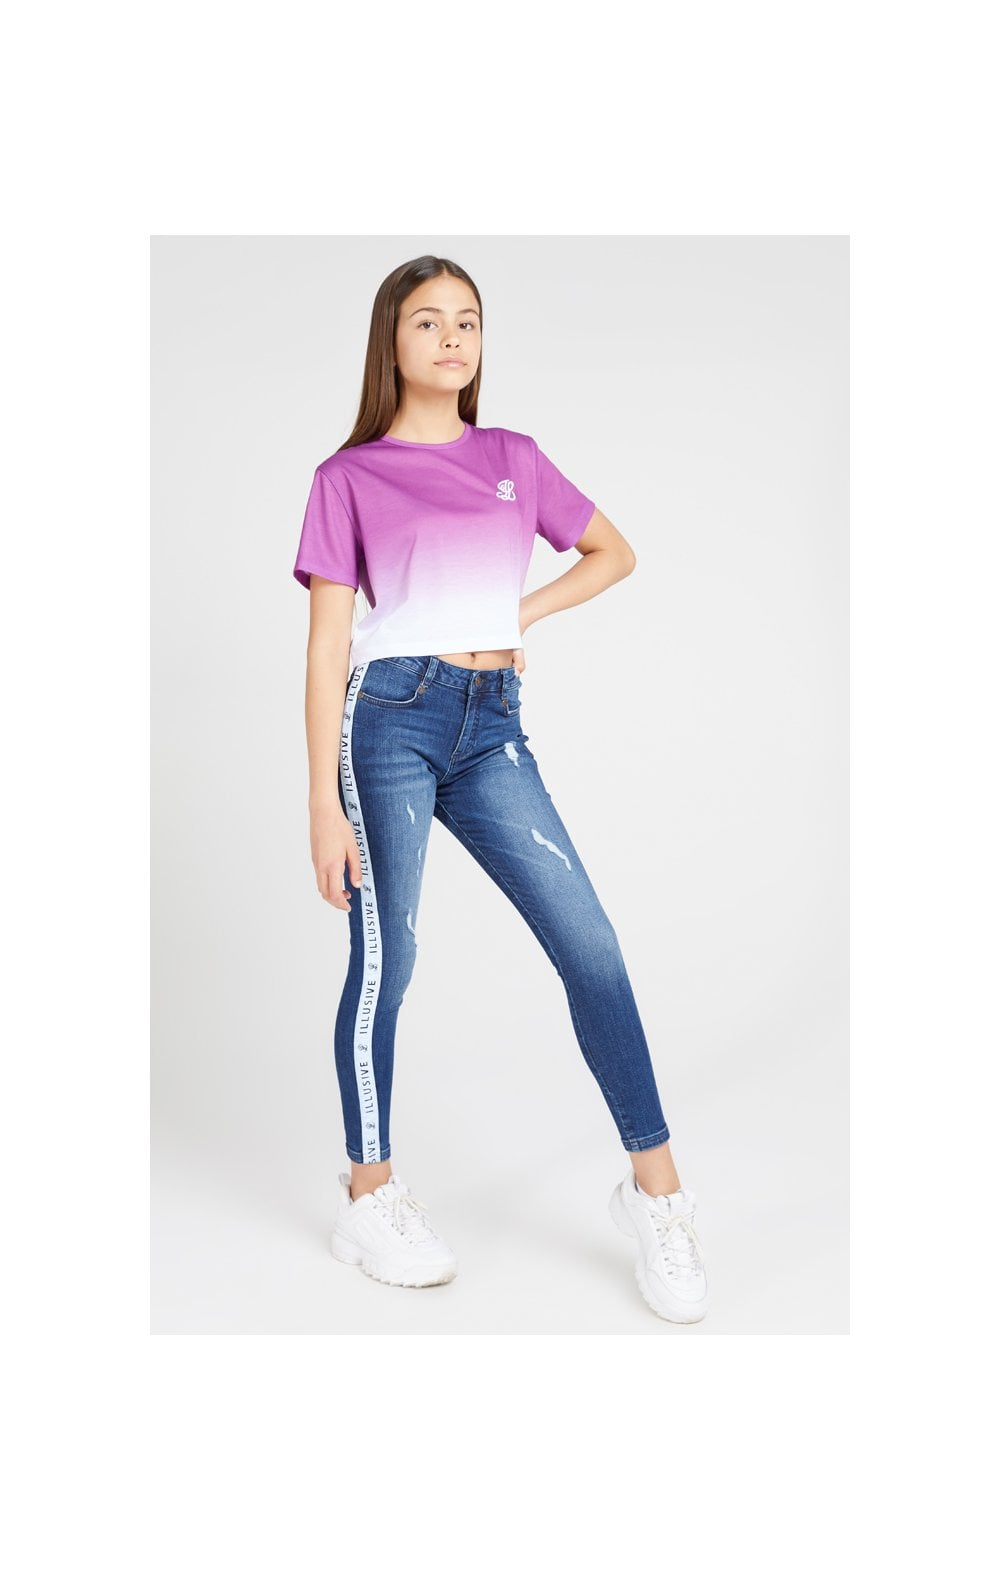 Load image into Gallery viewer, Illusive London Crop Fade Tee - Pink & White (6)